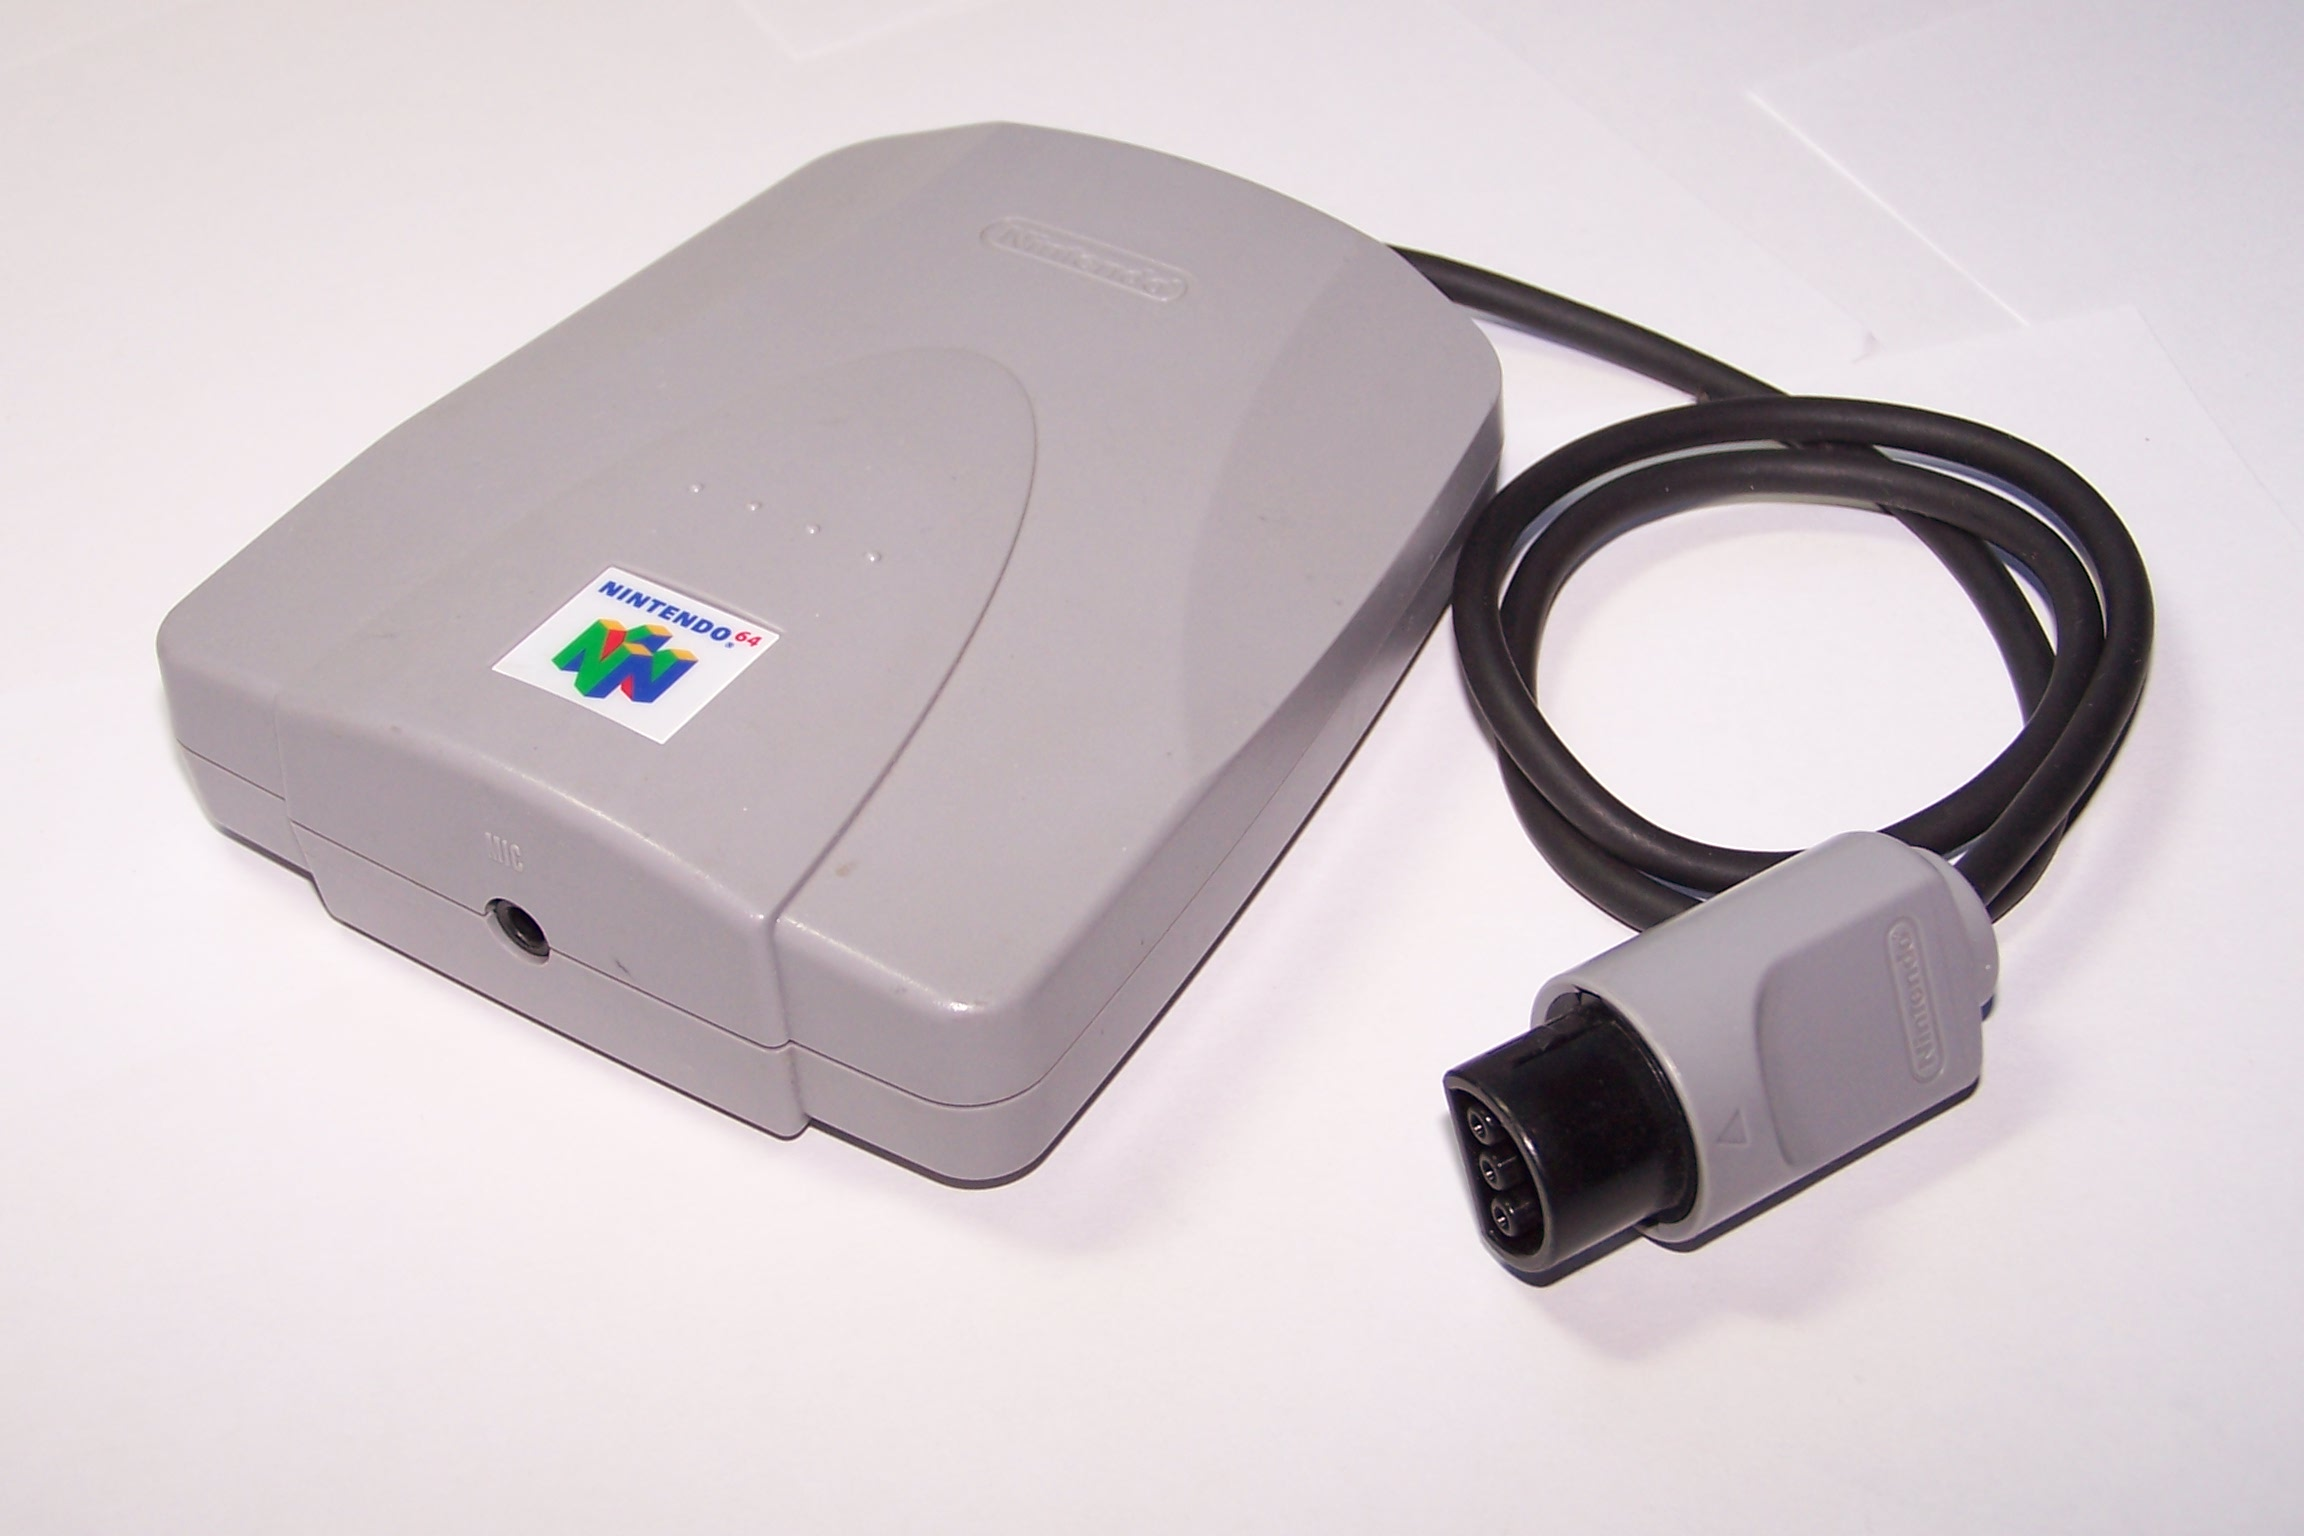 Hook up n64 to projector